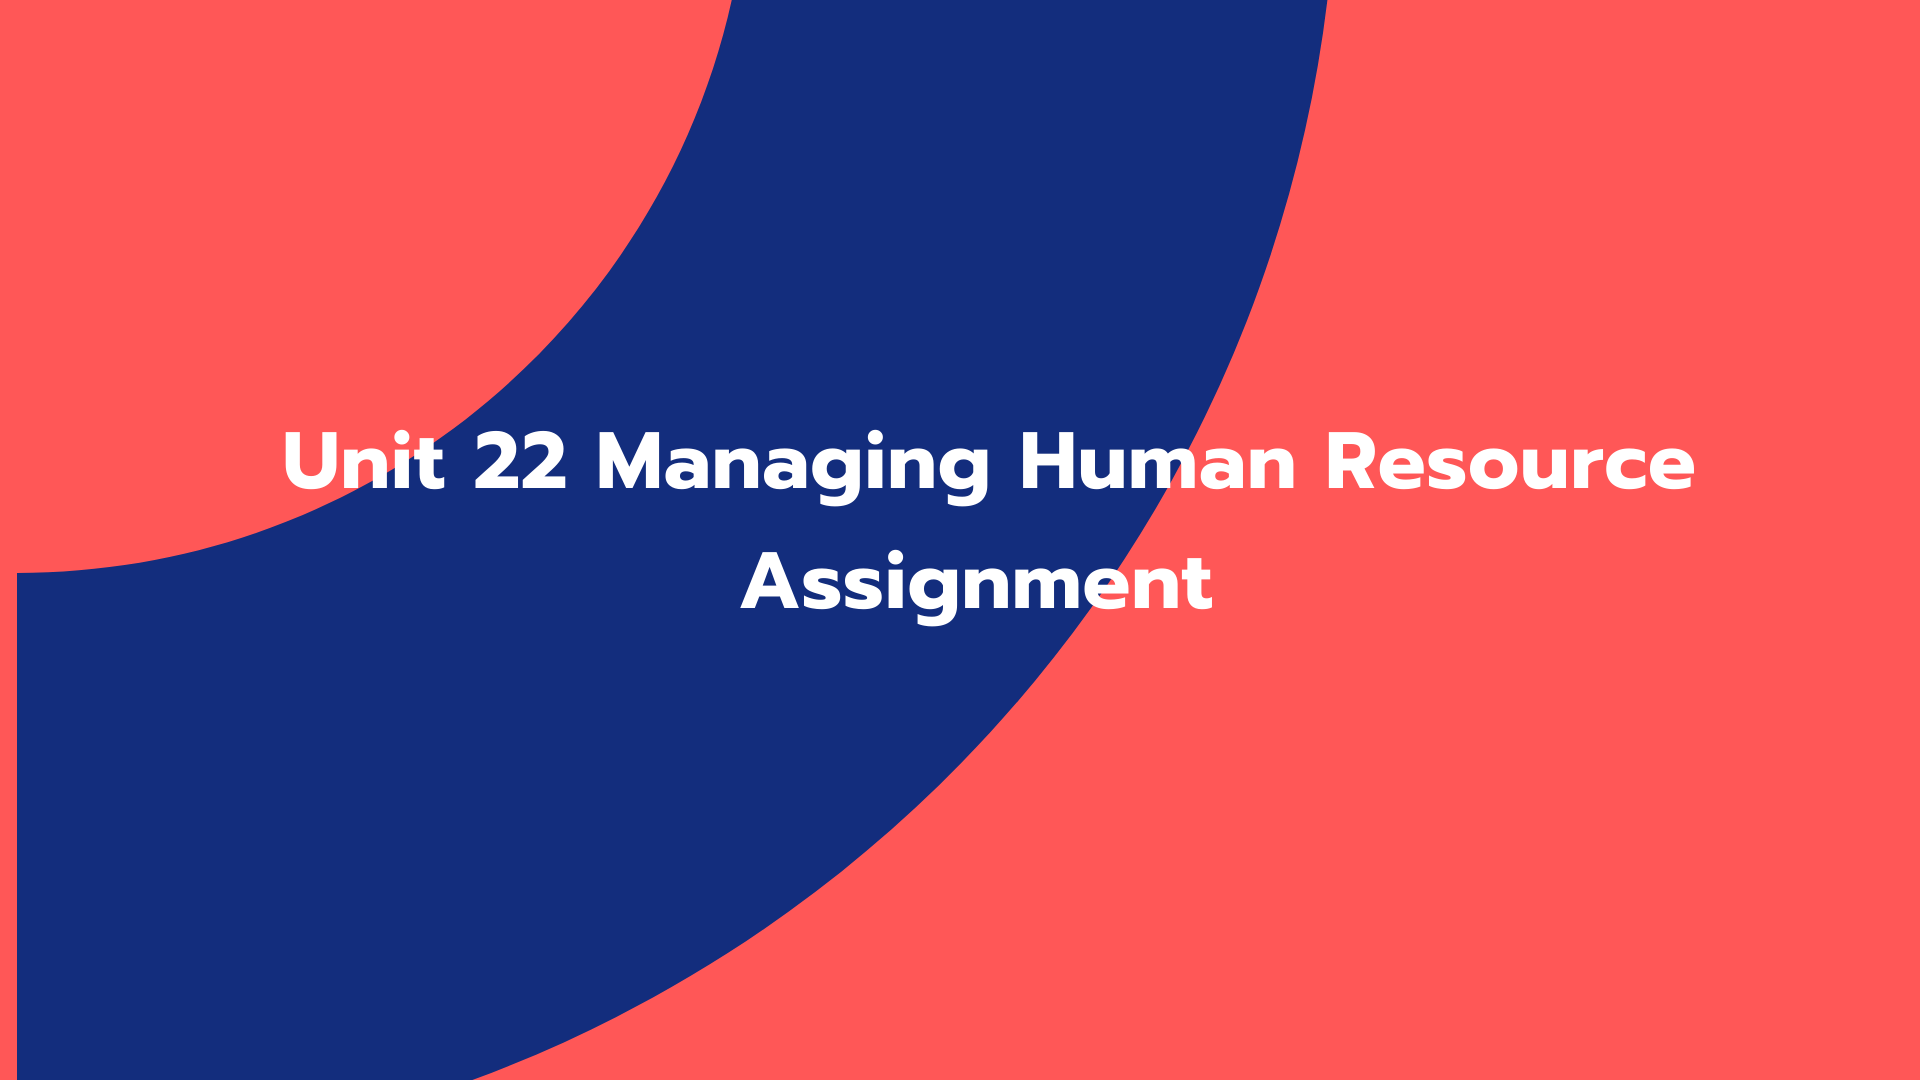 Unit 22 Managing Human Resource Assignment